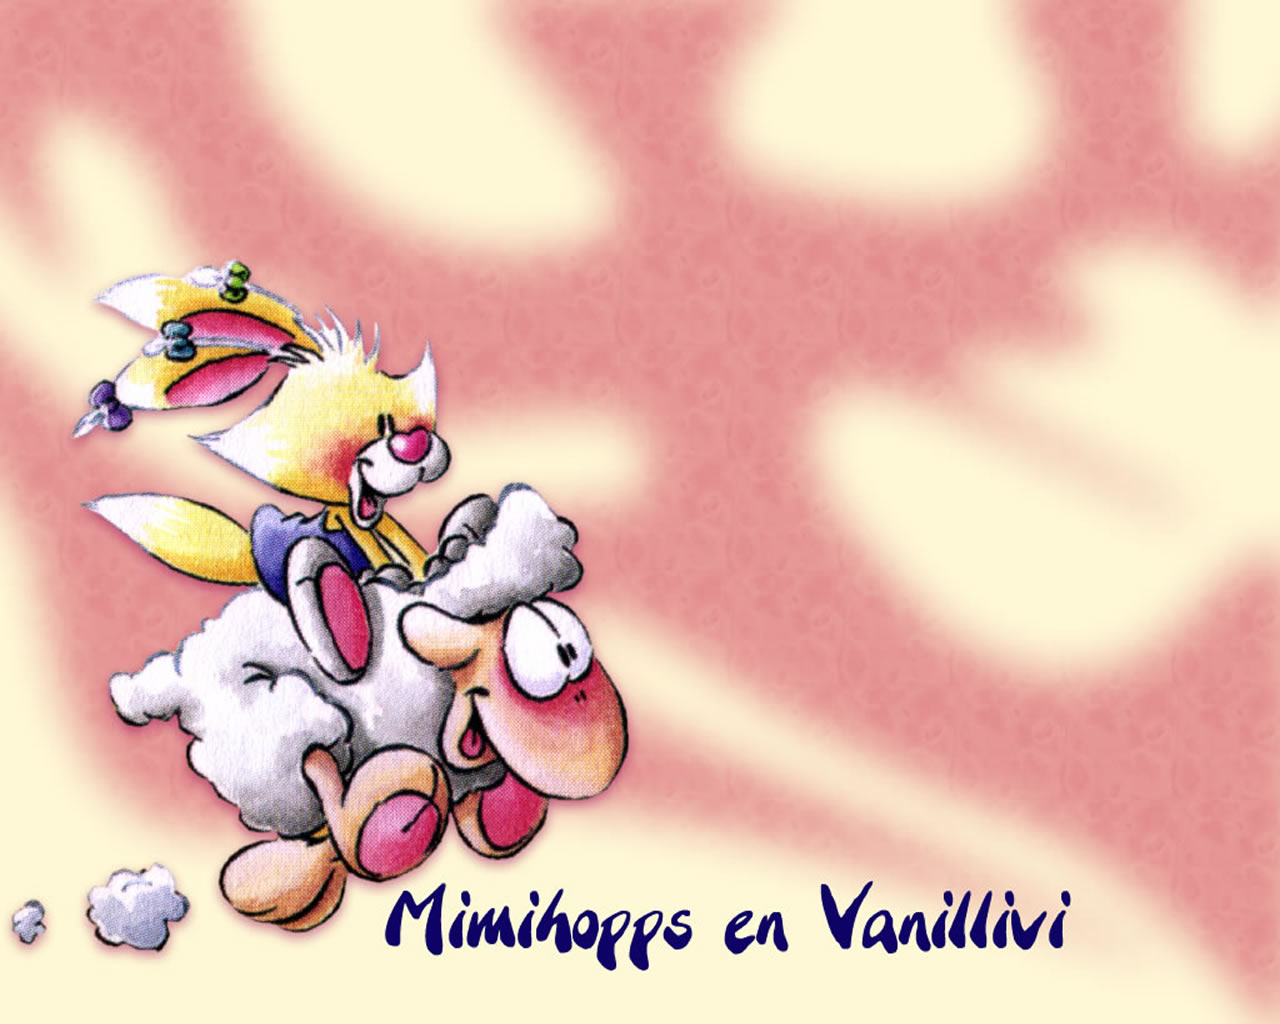 download wallpaper: Mimihopps en Vanillivi wallpaper